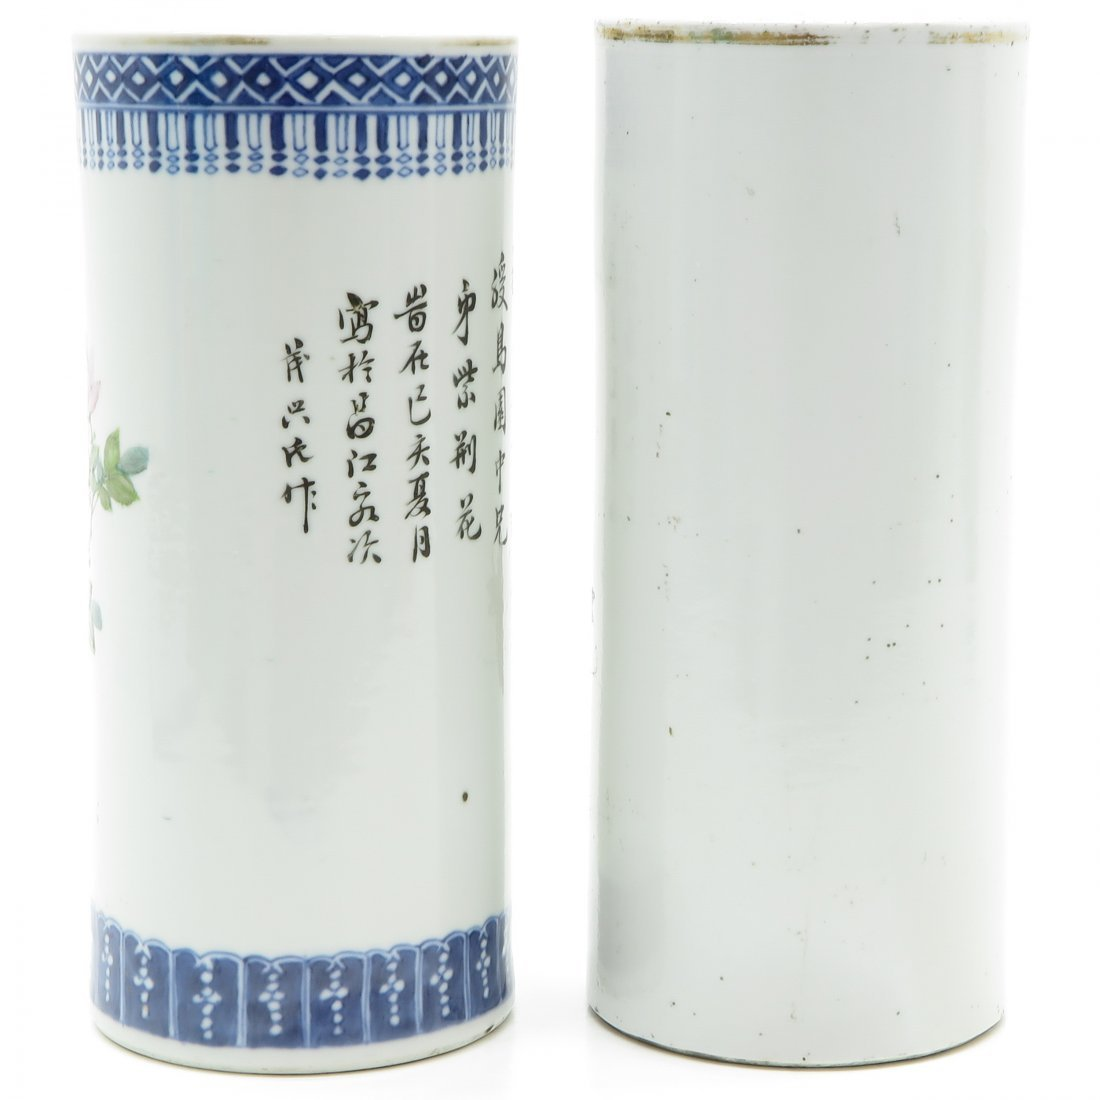 Lot of 2 China Porcelain Cylinder Roll Wagon Vases - 3